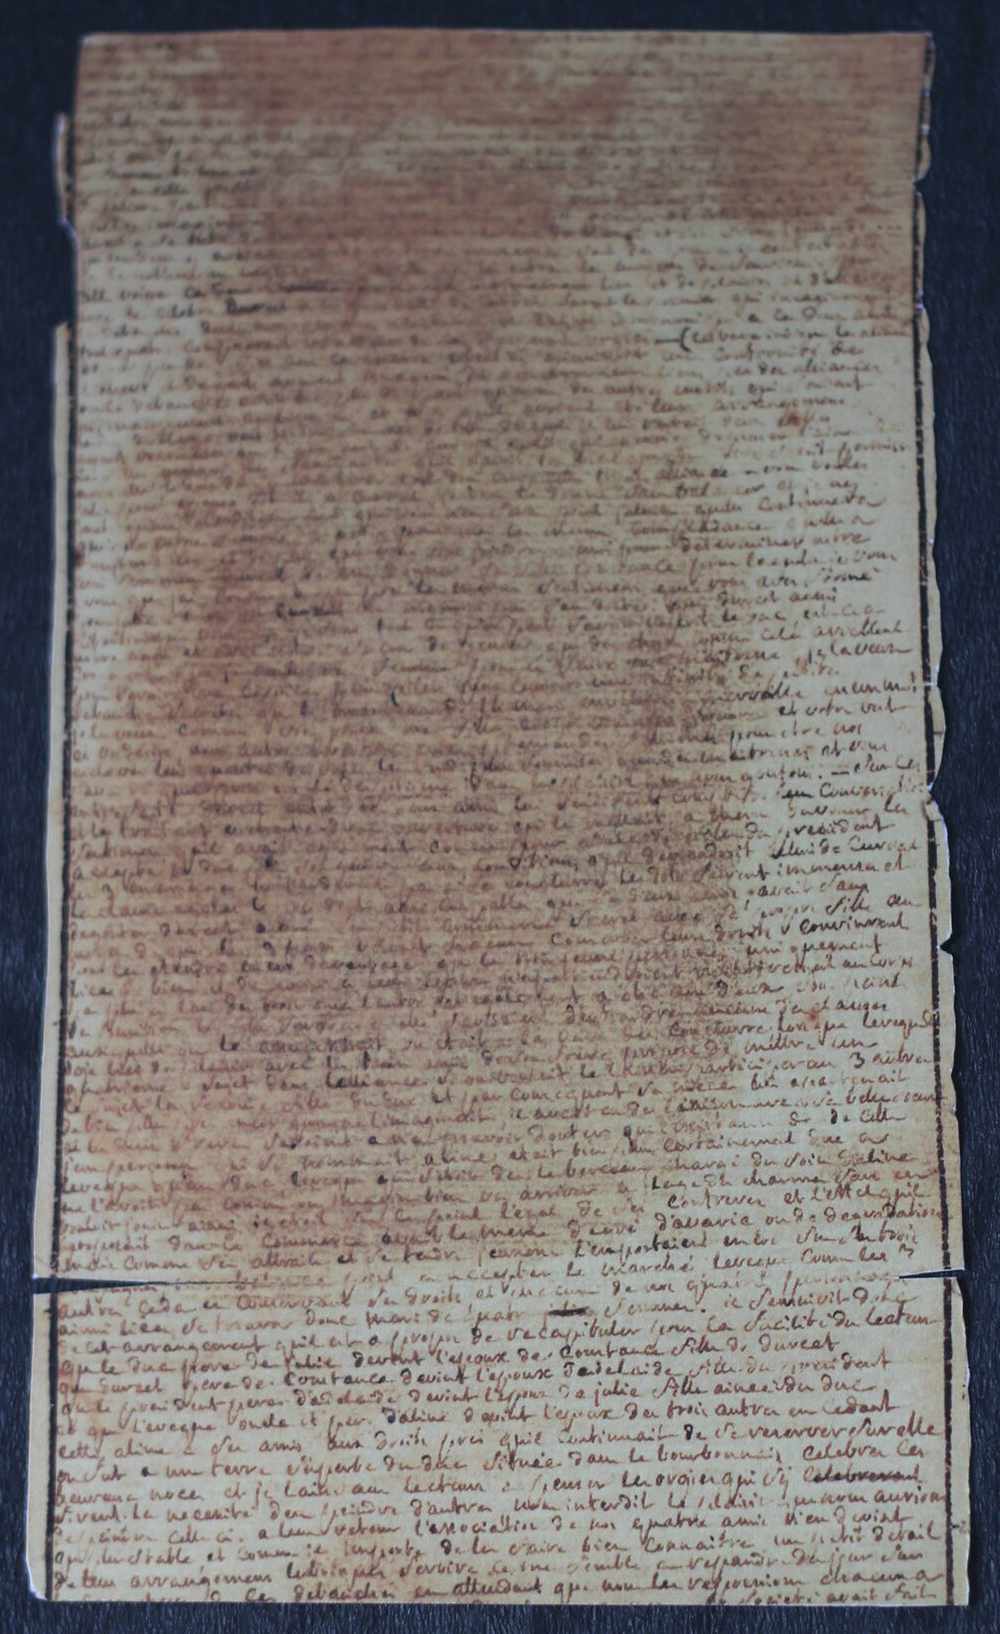 Photograph of a page from the manuscript of The 120 Days of Sodom by the Marquis de Sade.